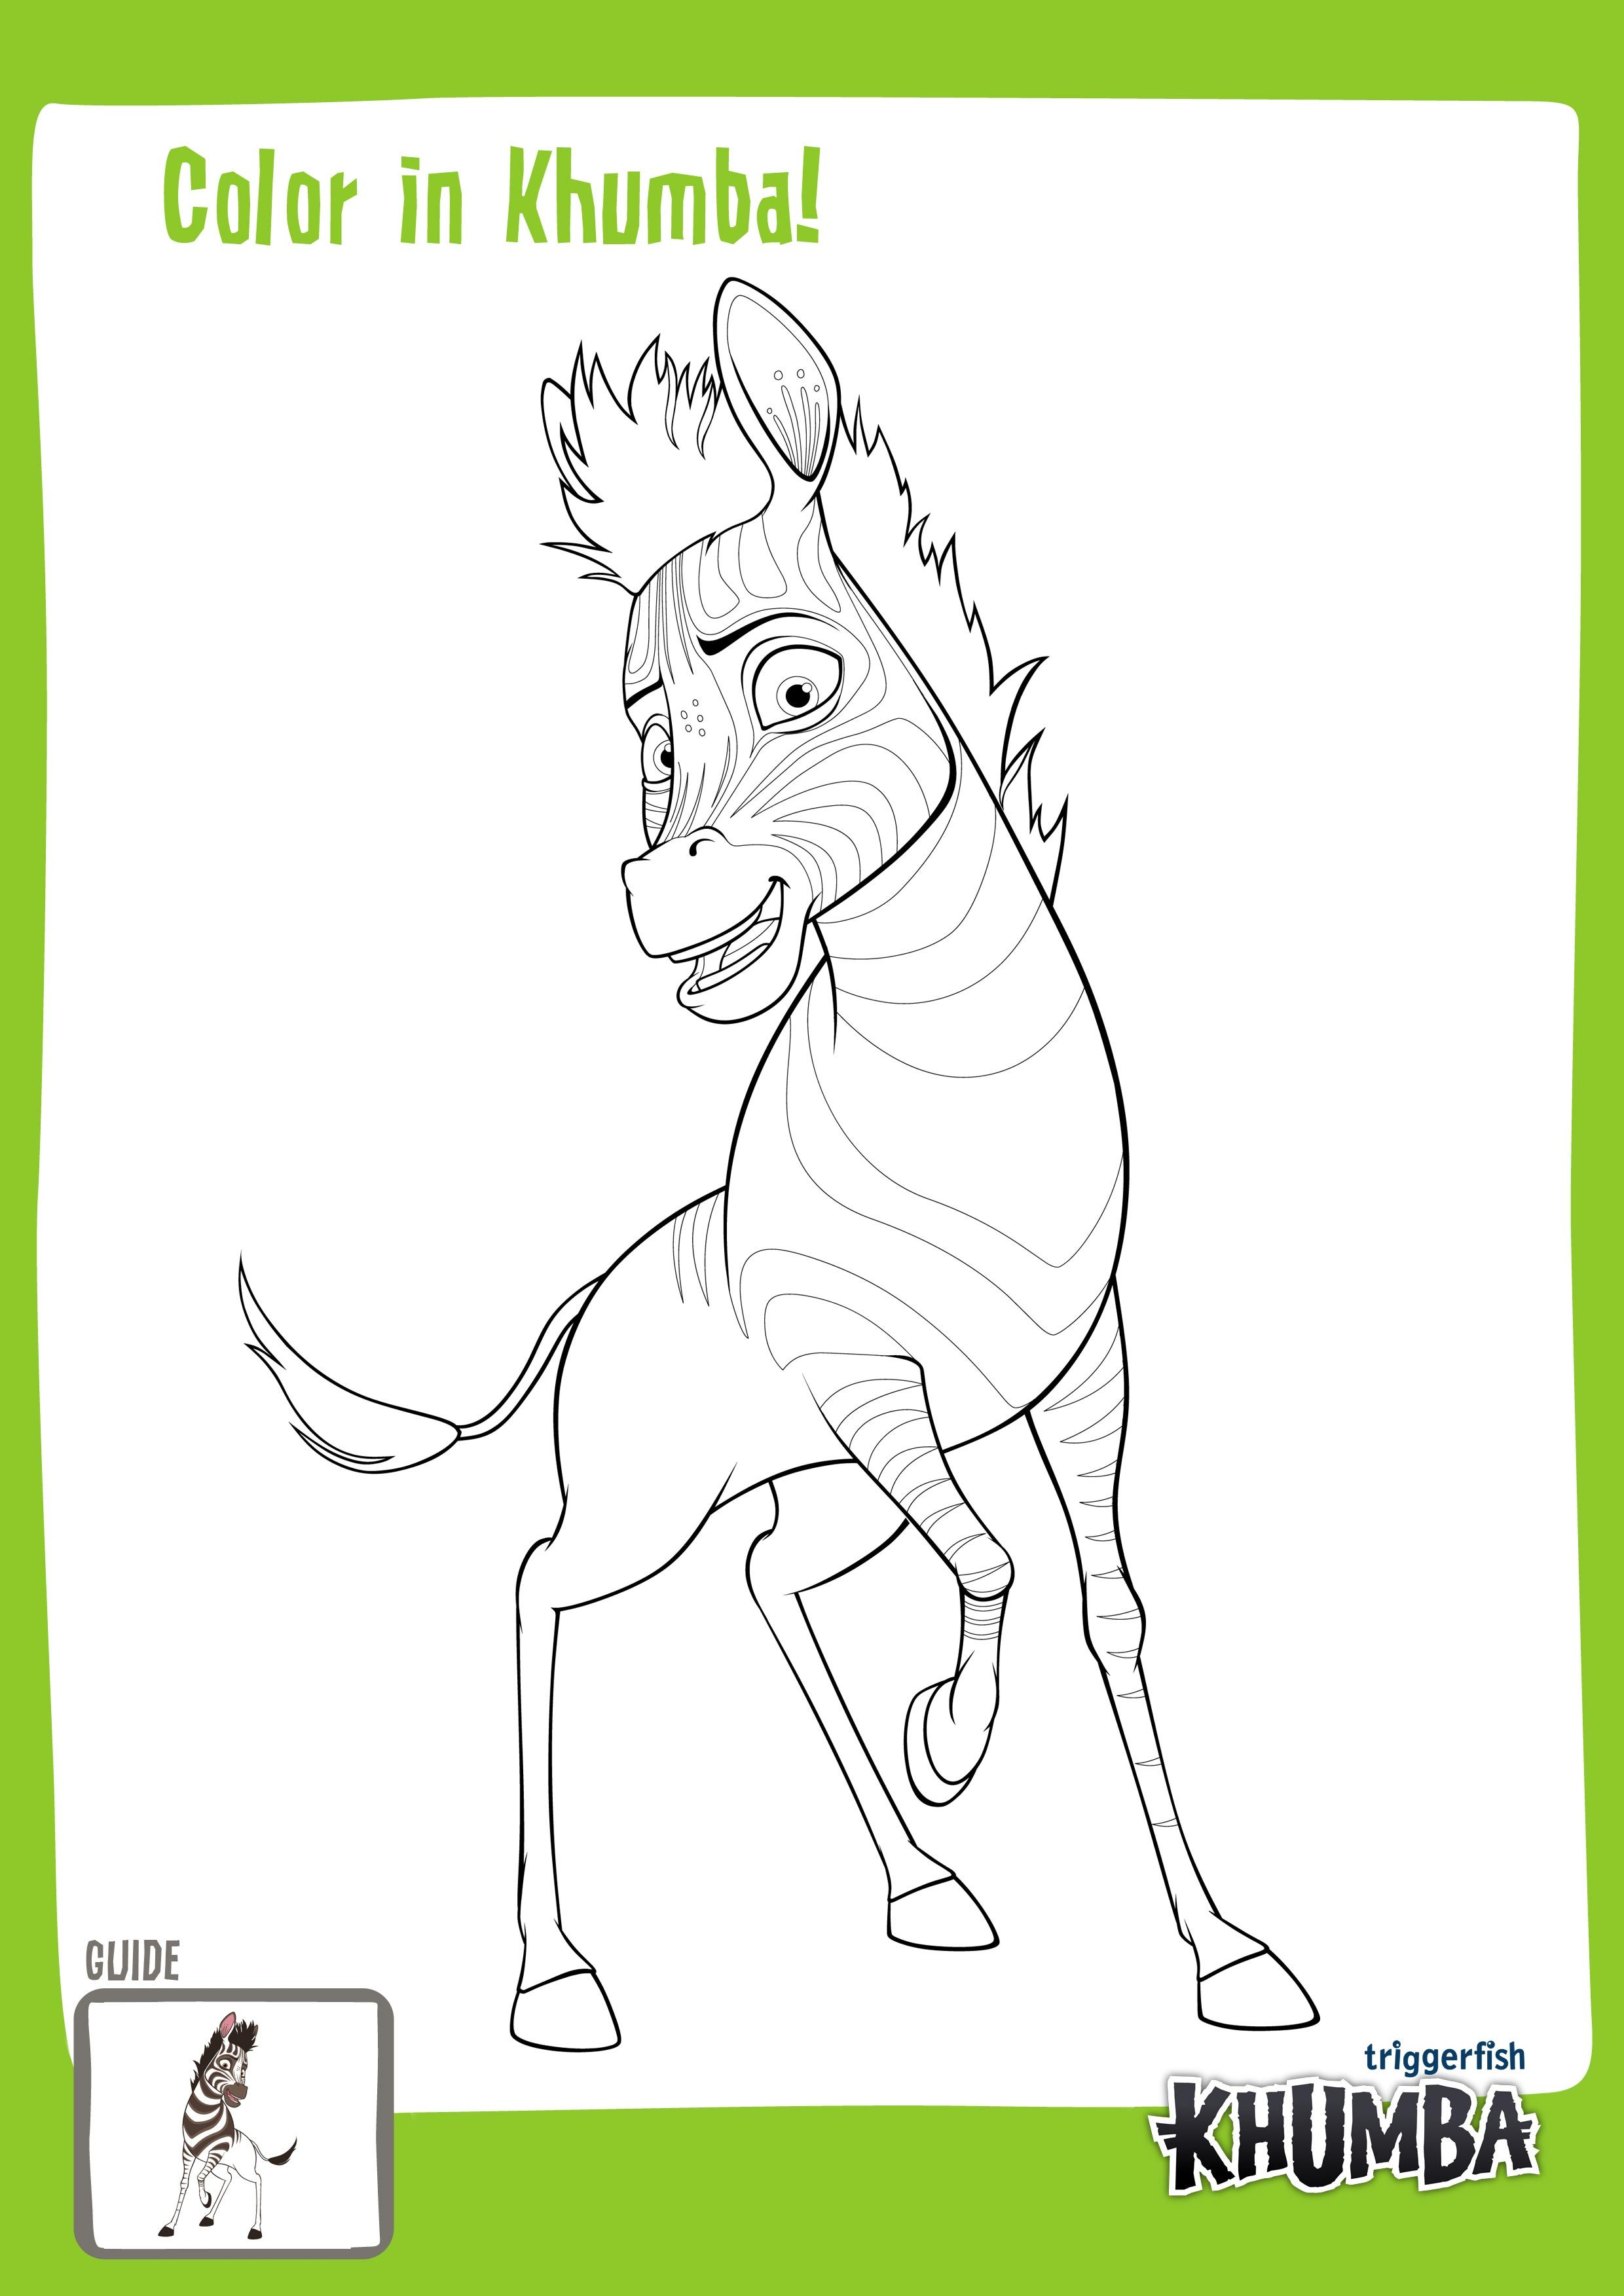 Hey Why Not Color In Khumba You Can Download And Print From Our Website From The Kidzone Section Www Khumbamovie C Games For Kids Fun Activities Activities